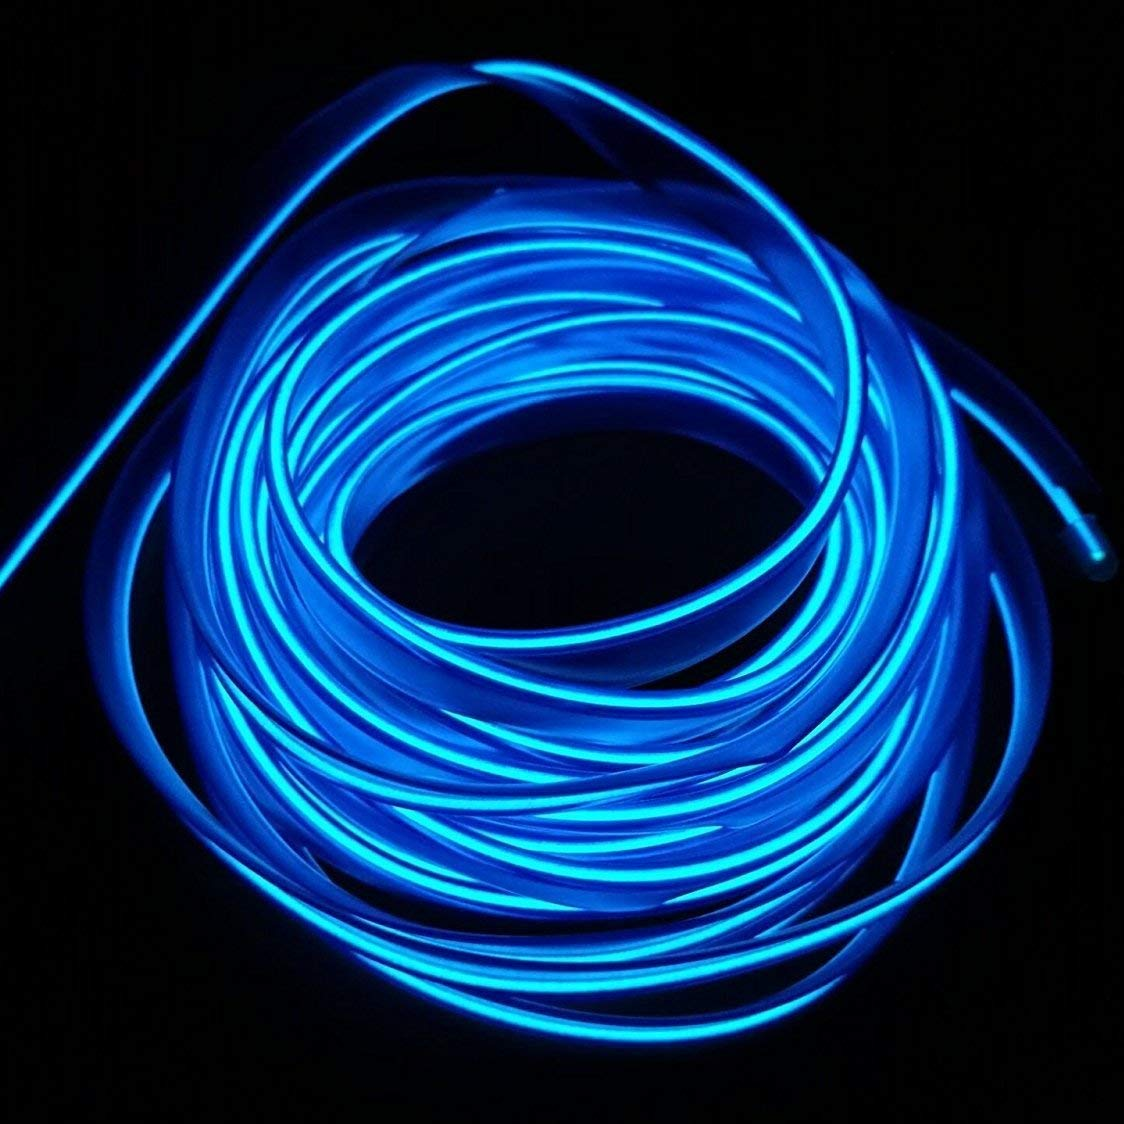 USB Neon EL Wire for Car Interior Bike Cosplay Festival Decoration LED Glowing Electroluminescent Wire Light Cold Lights with Drive Light Lamp Glow String Strip 12V 1M, Green